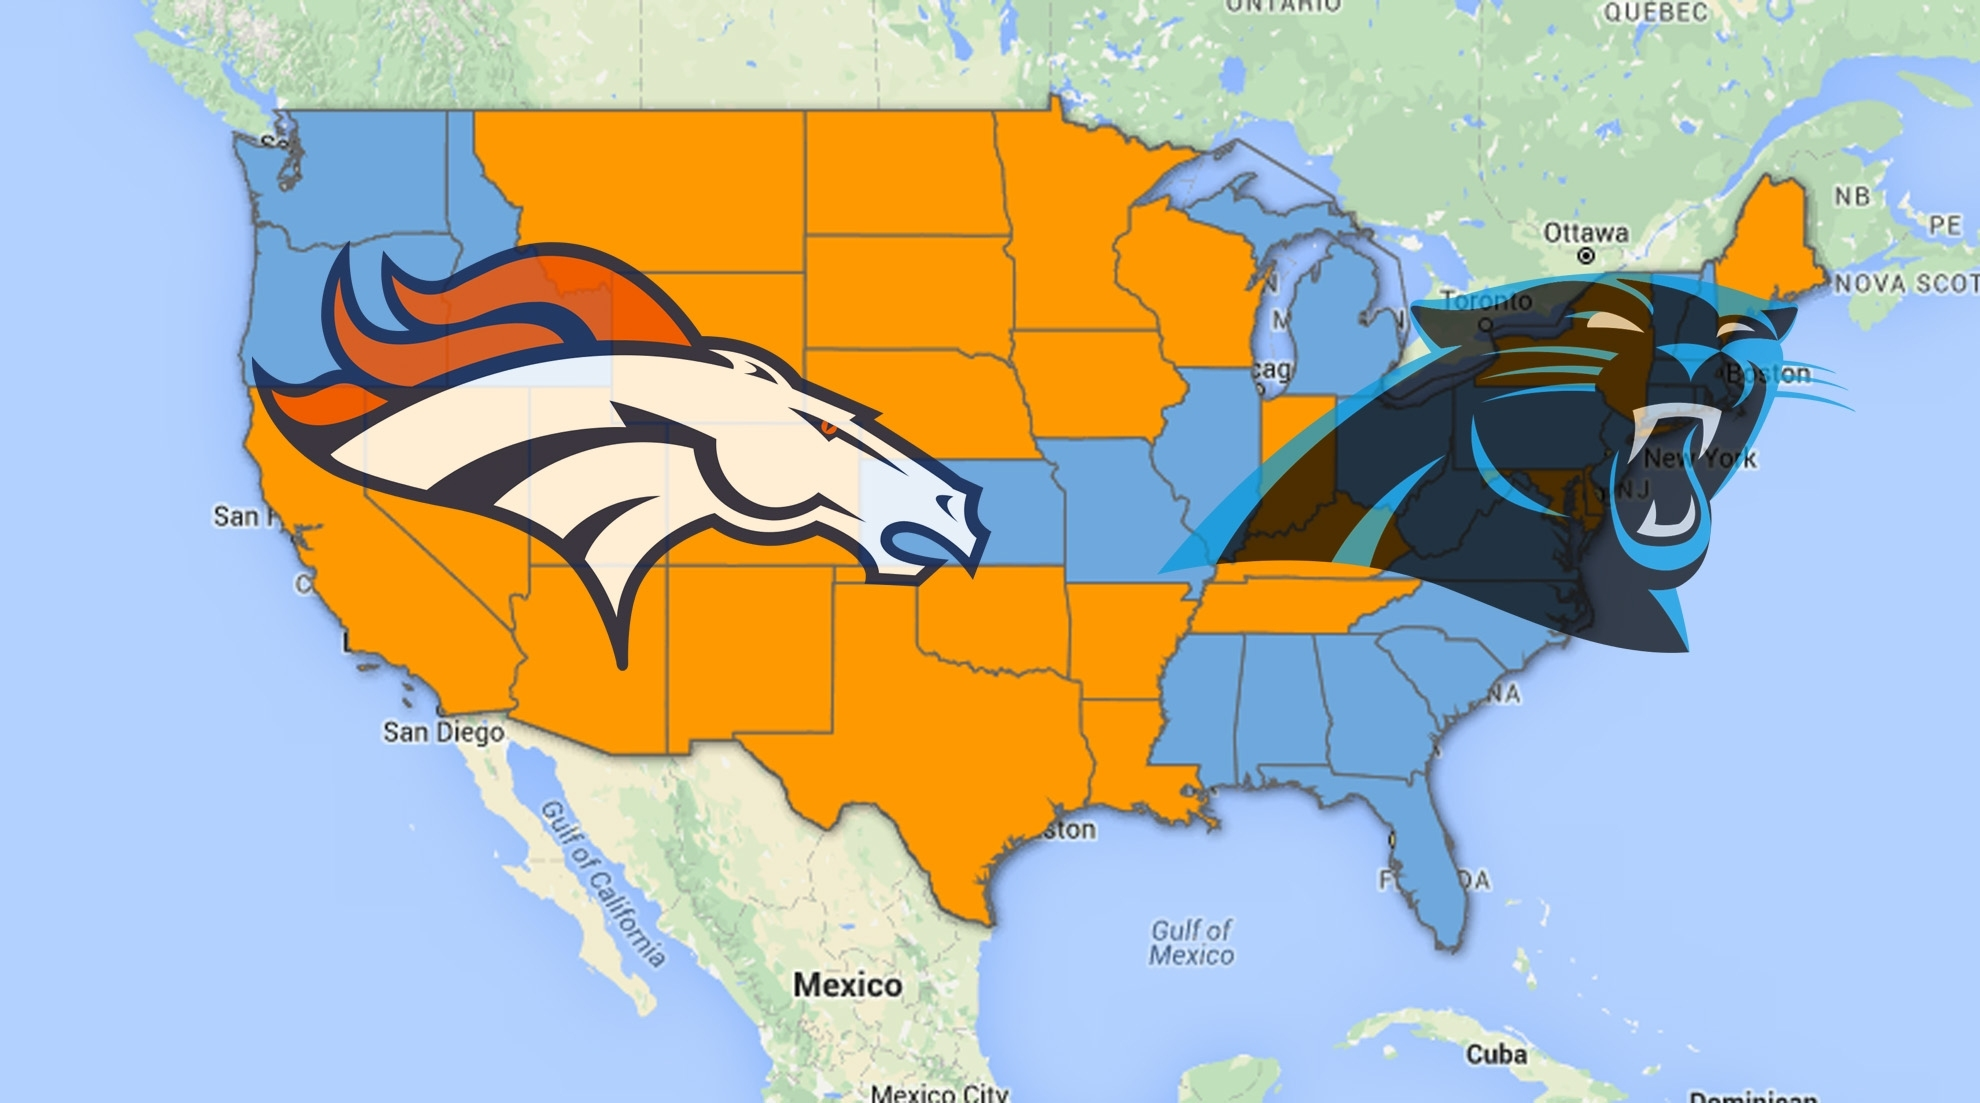 A Look At Where Super Bowl 50 Rooting Interest Lies within Super Bowl Fan Map